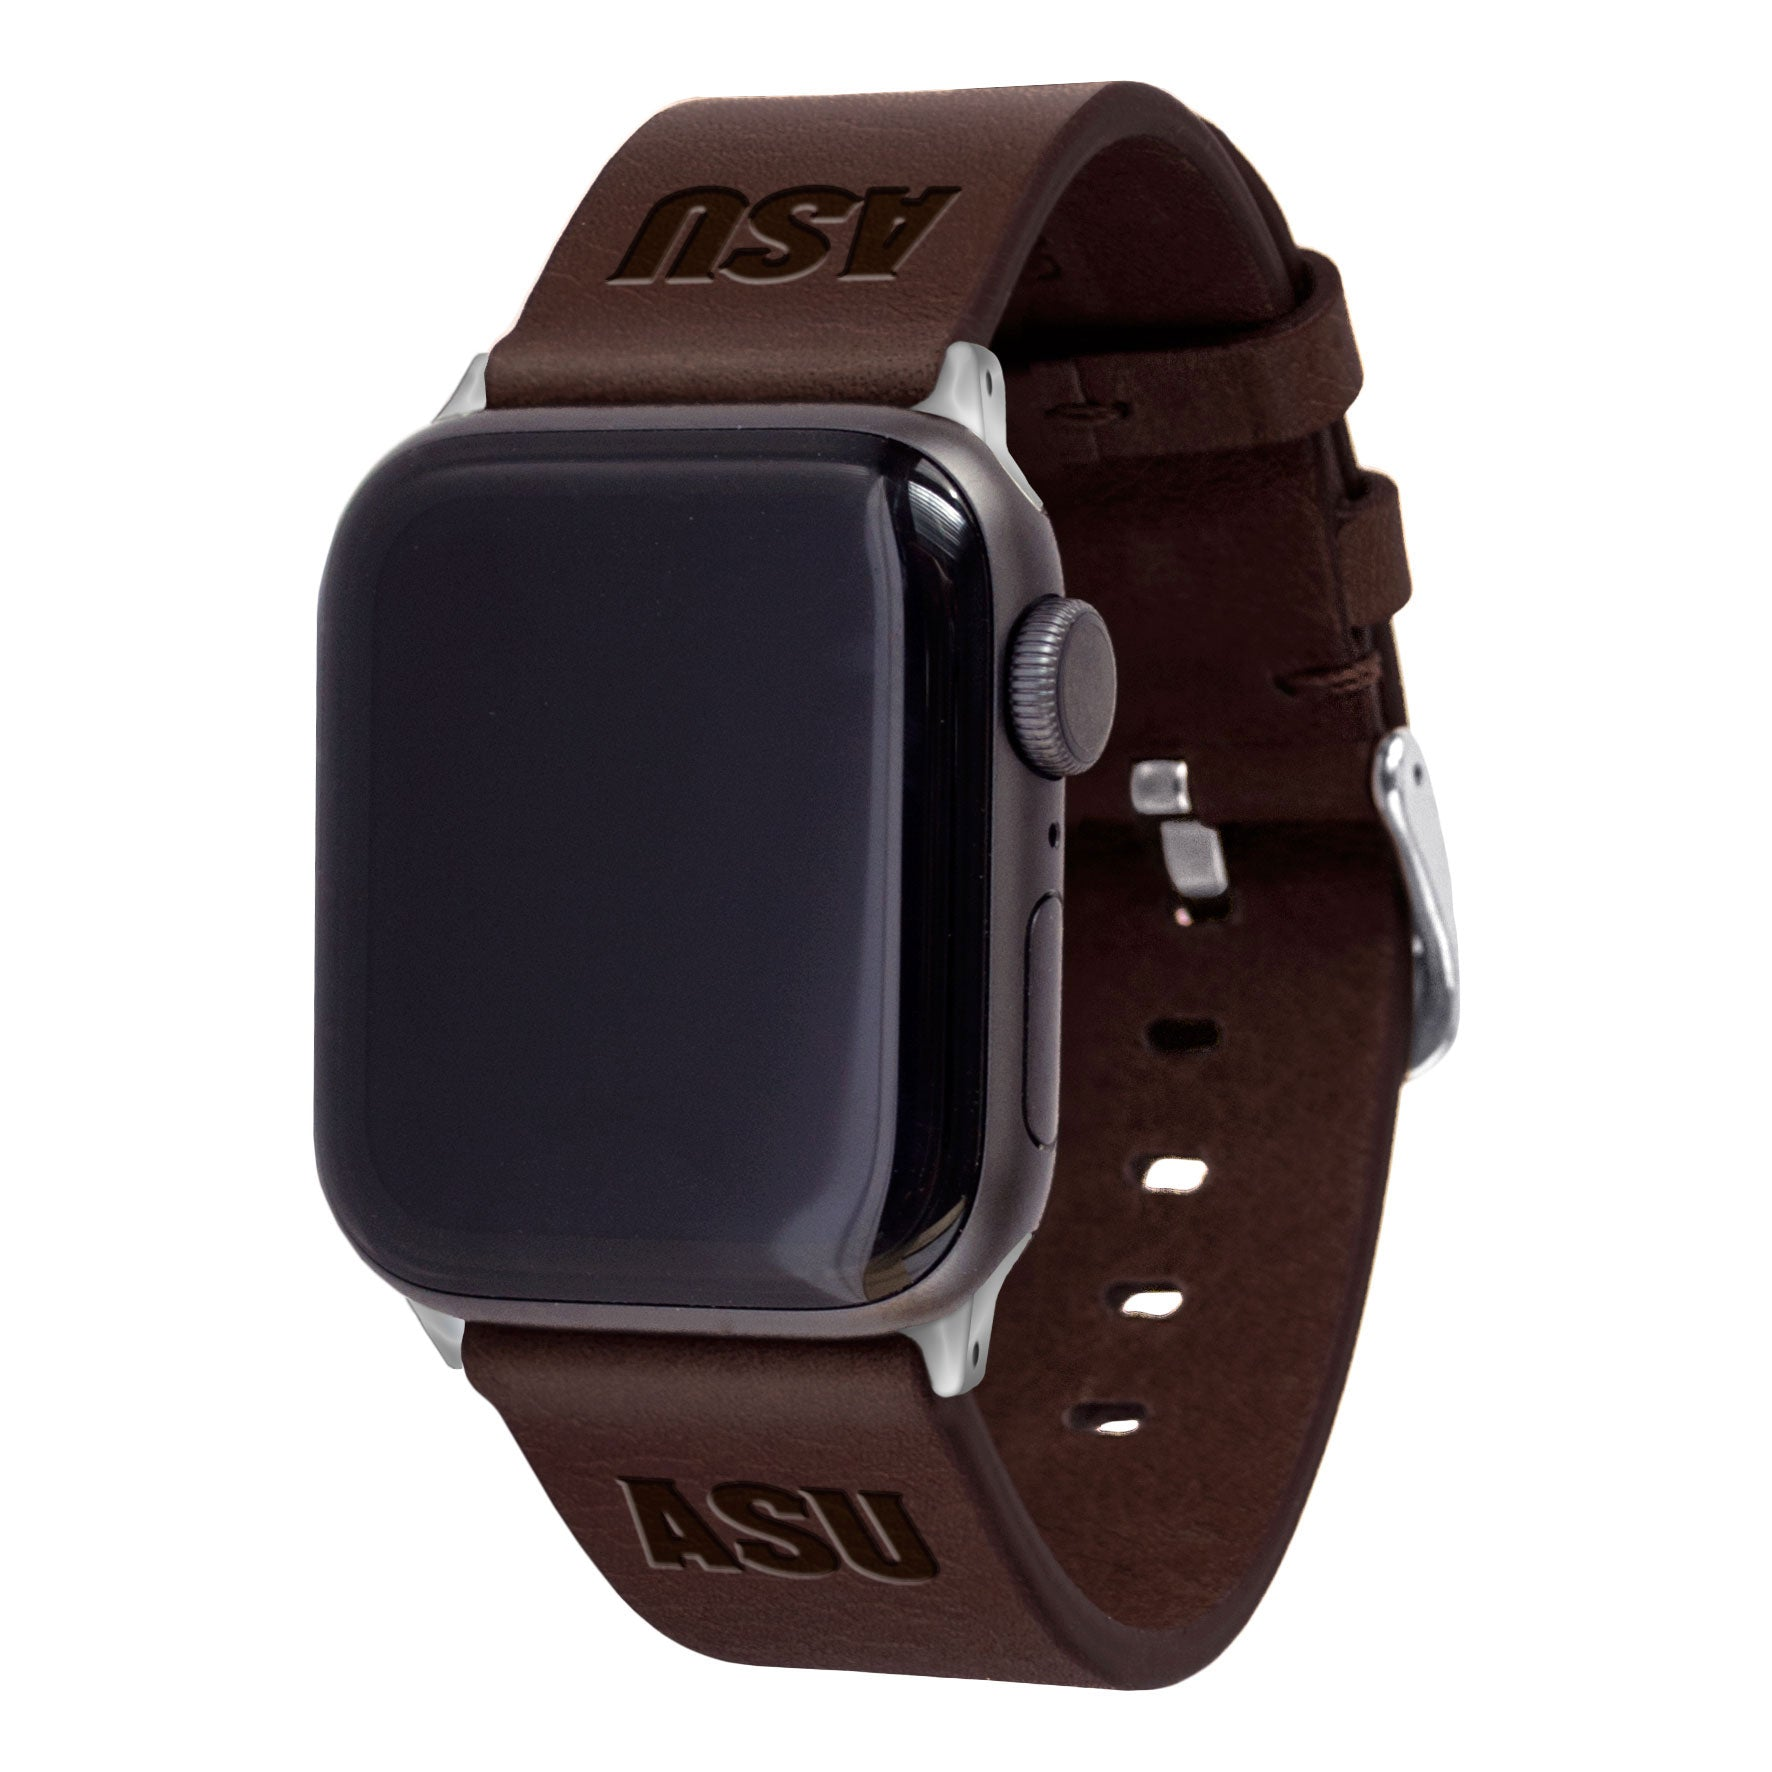 Arizona State Sun Devils Leather Apple Watch Band - AffinityBands